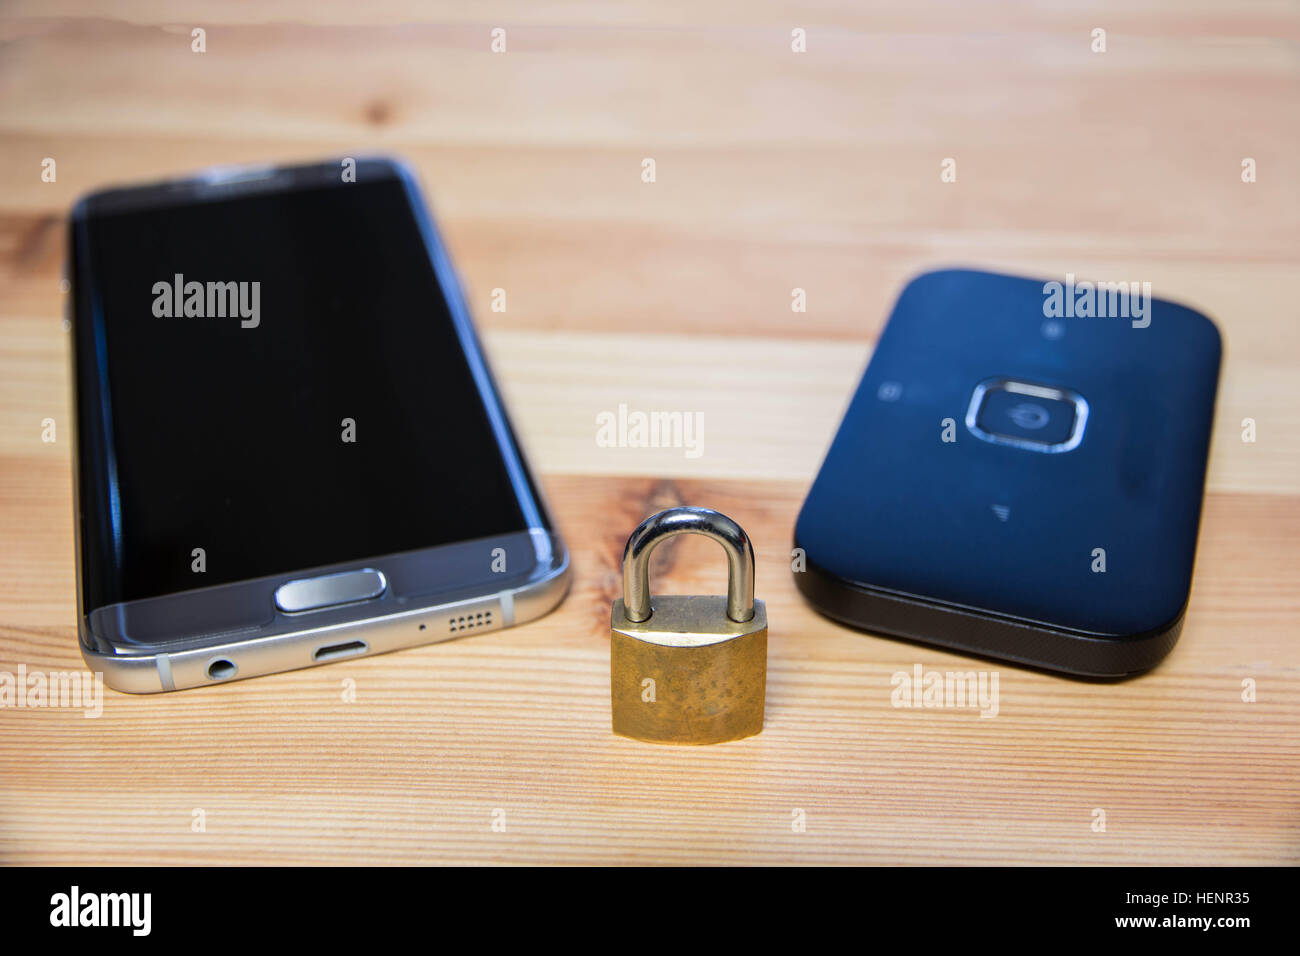 phone and pocket wifi  secure, private, confidential connection for internet use - Stock Image